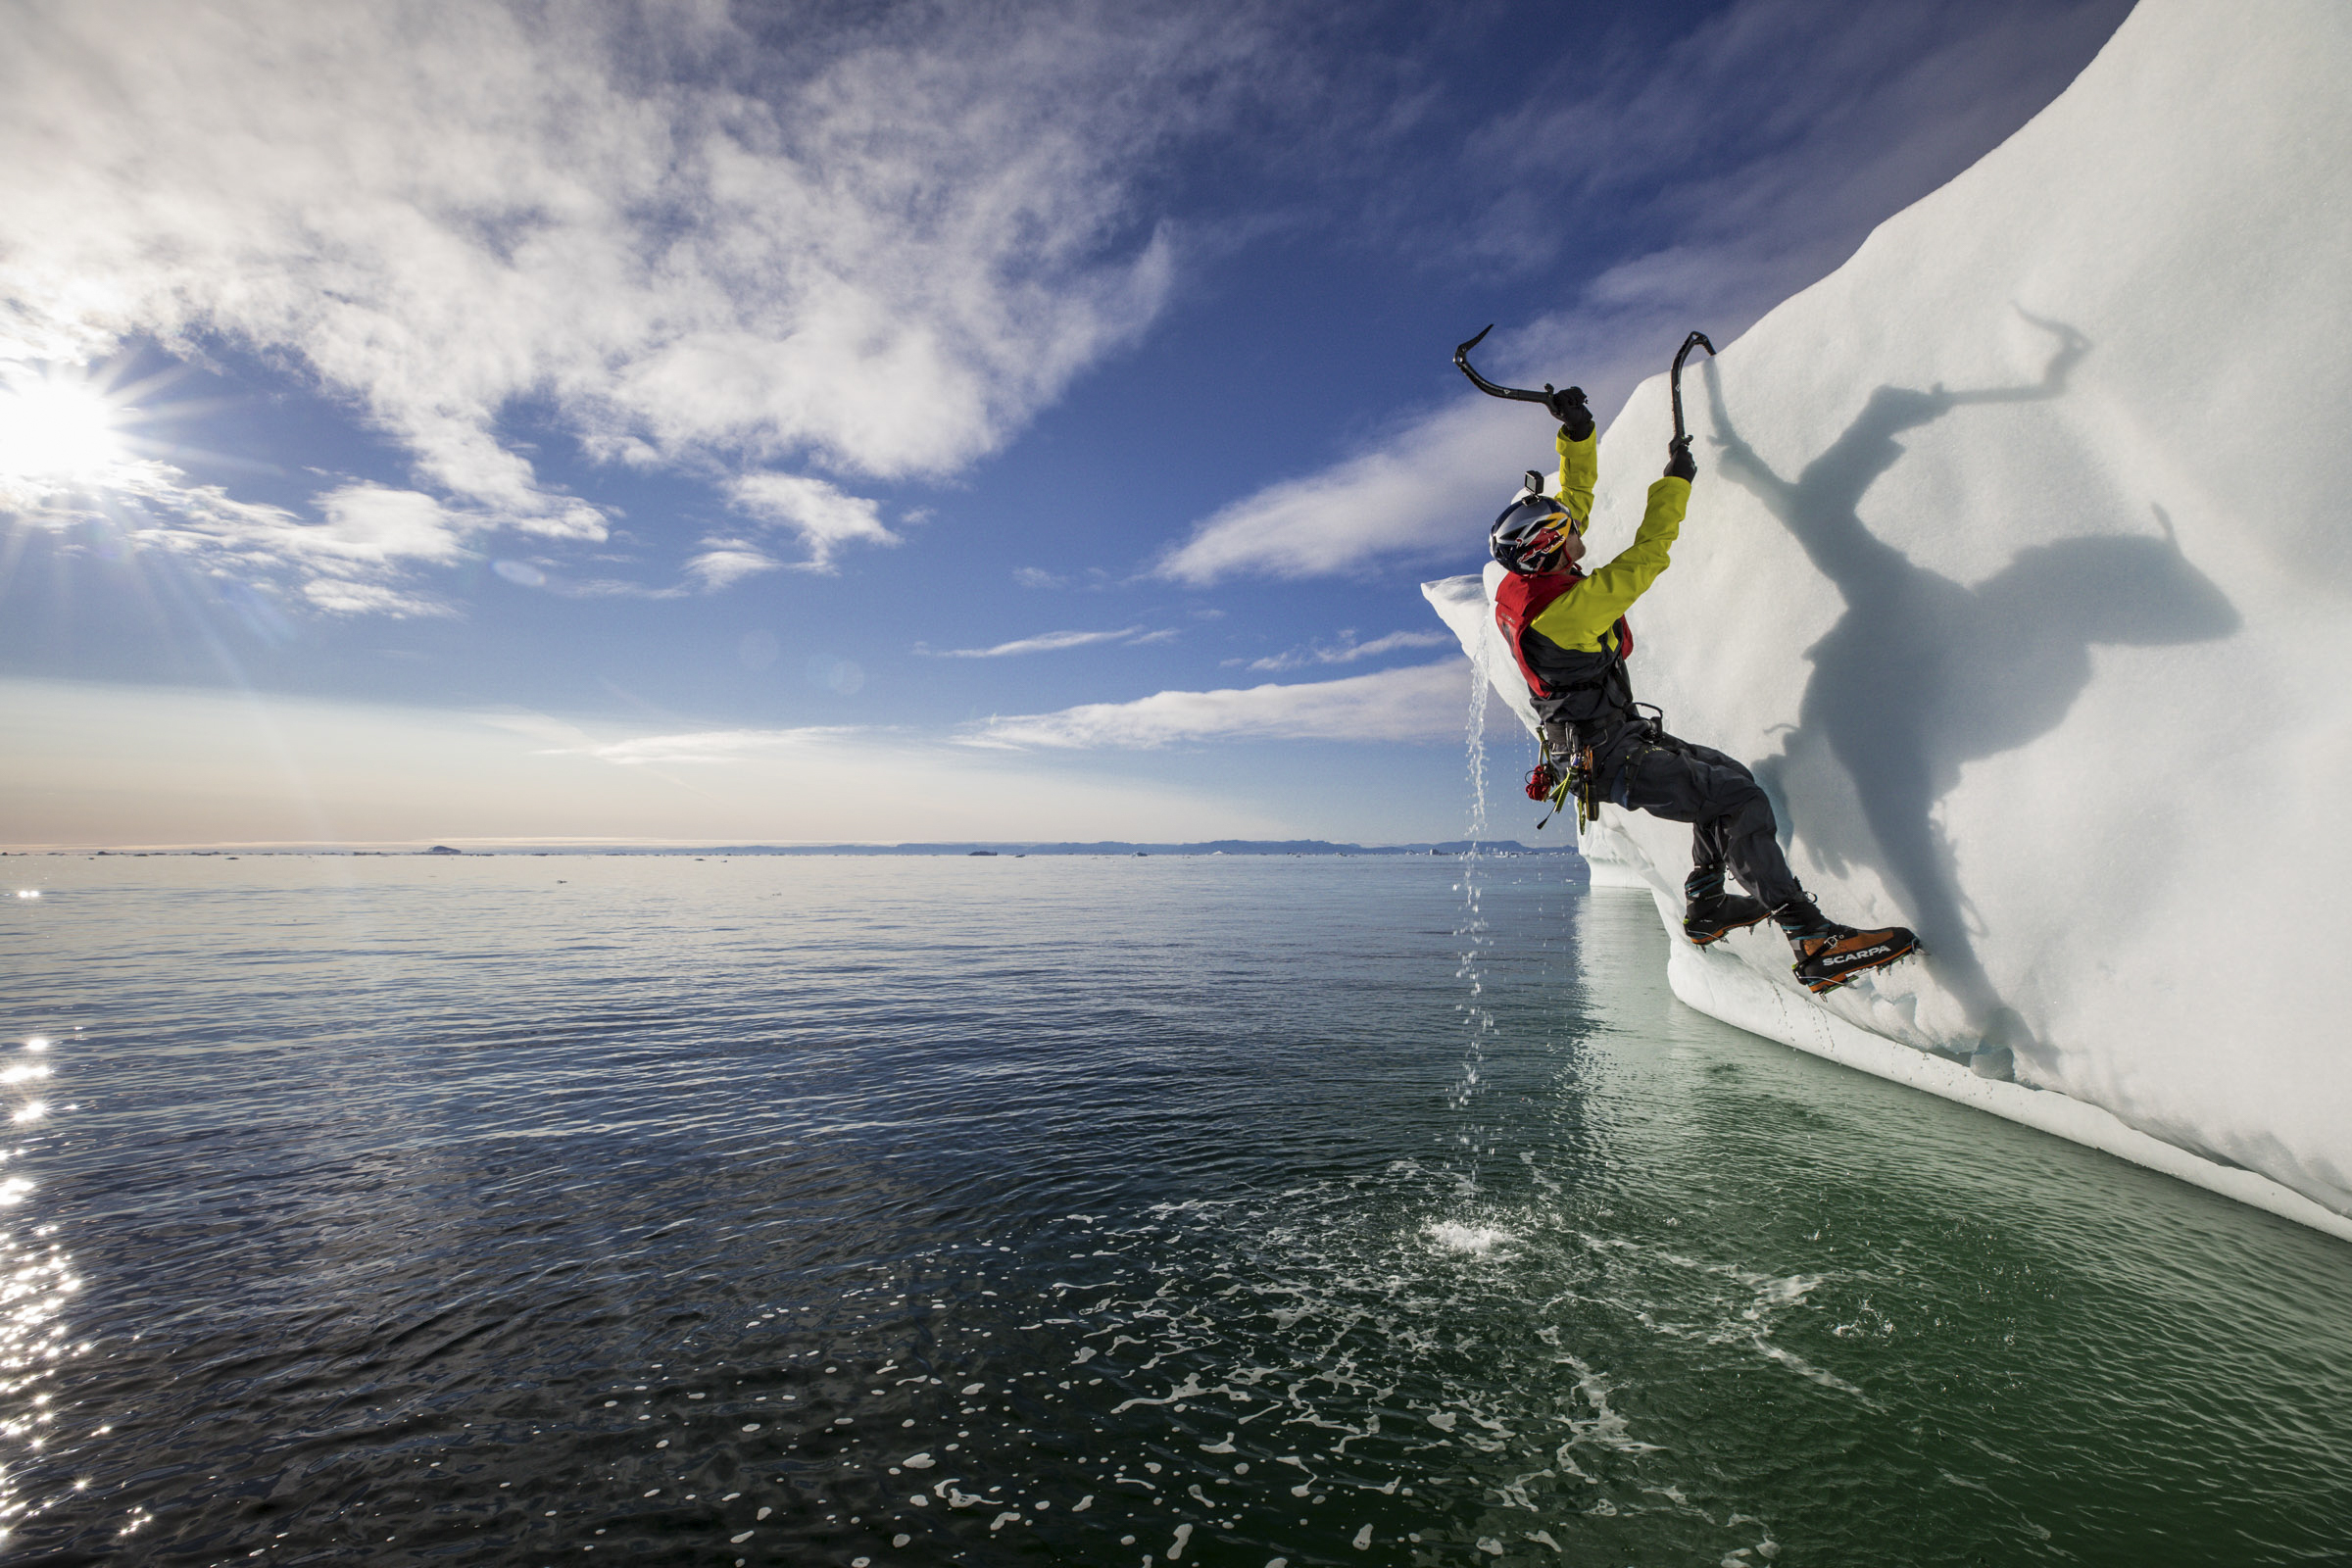 'Big pieces' of Kilimanjaro 'missing' due to climate crisis, says ice climber Will Gadd